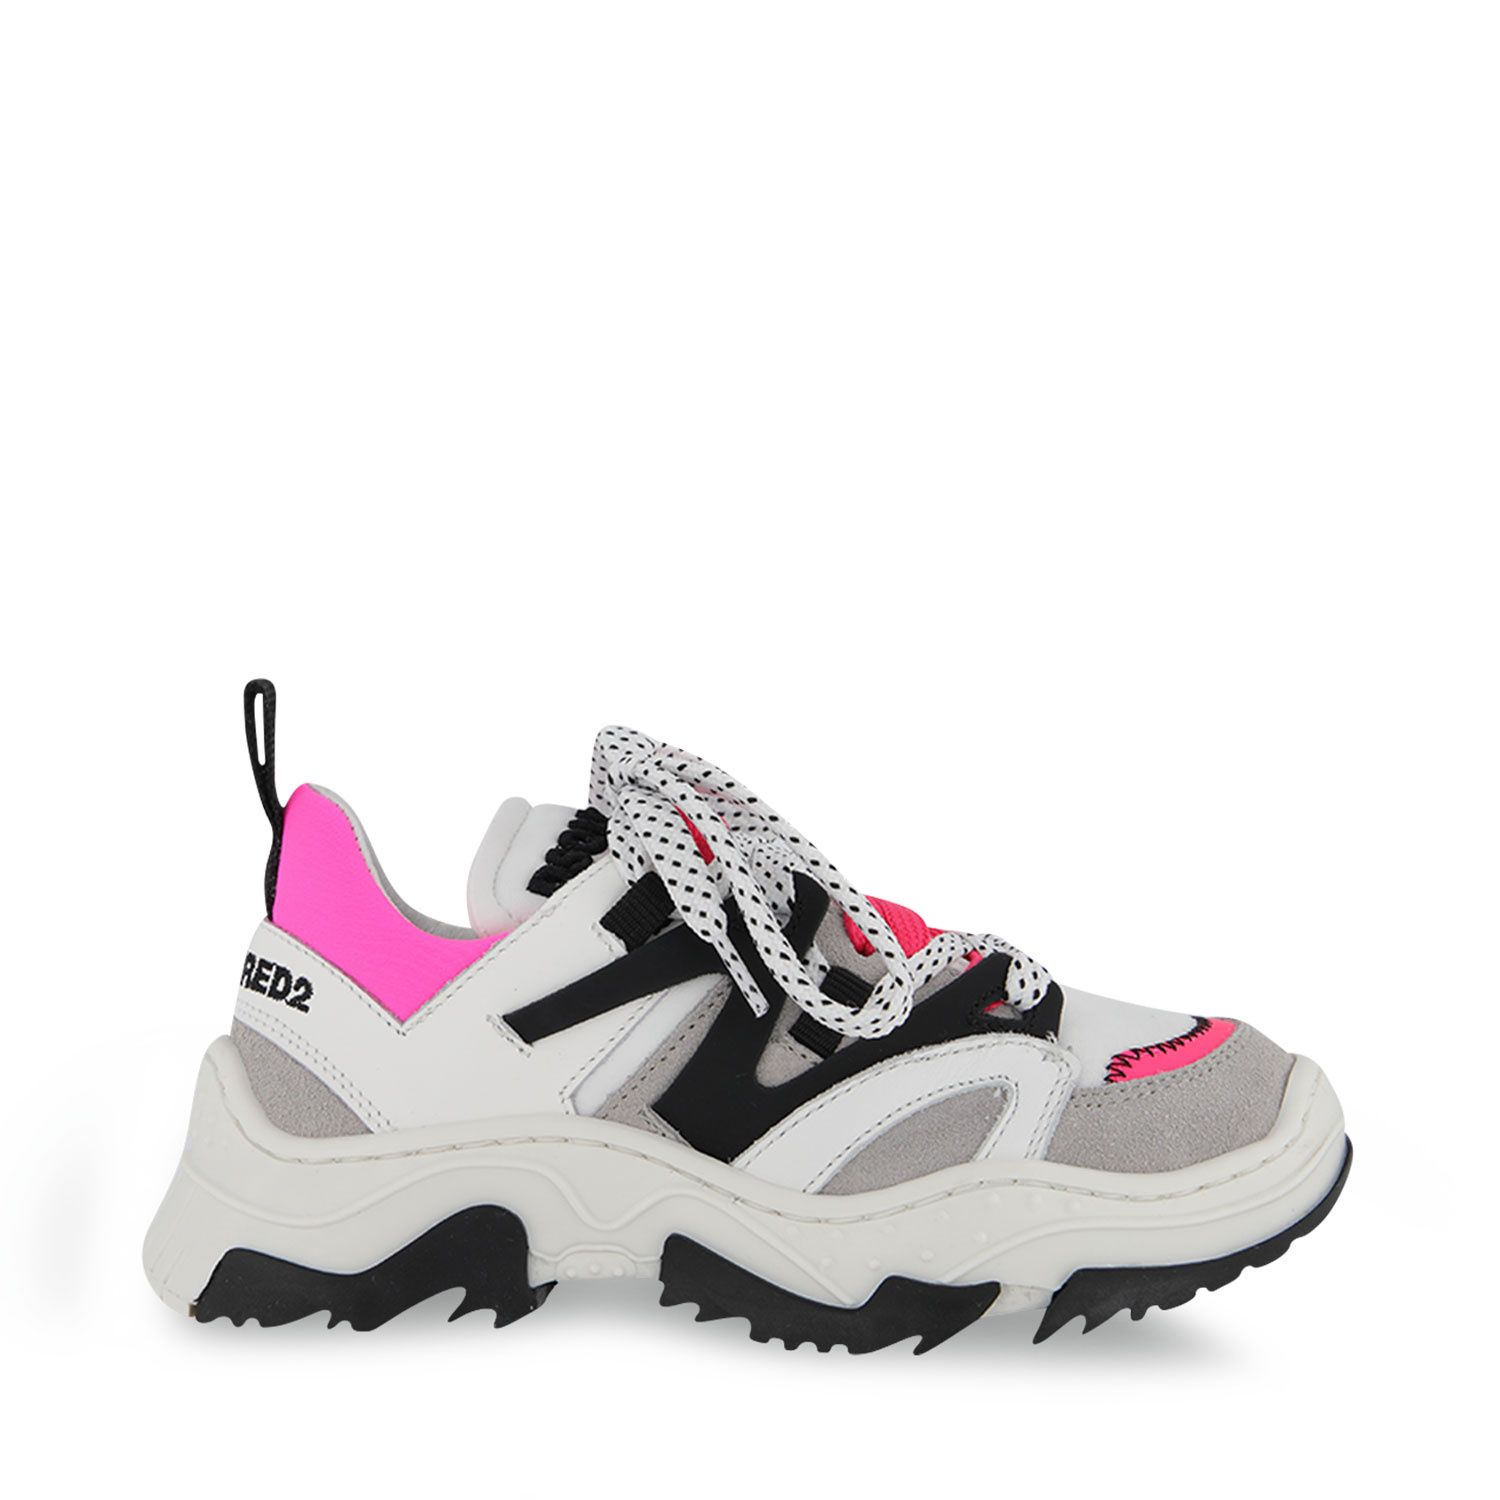 Picture of Dsquared2 67081 kids sneakers fluoro pink